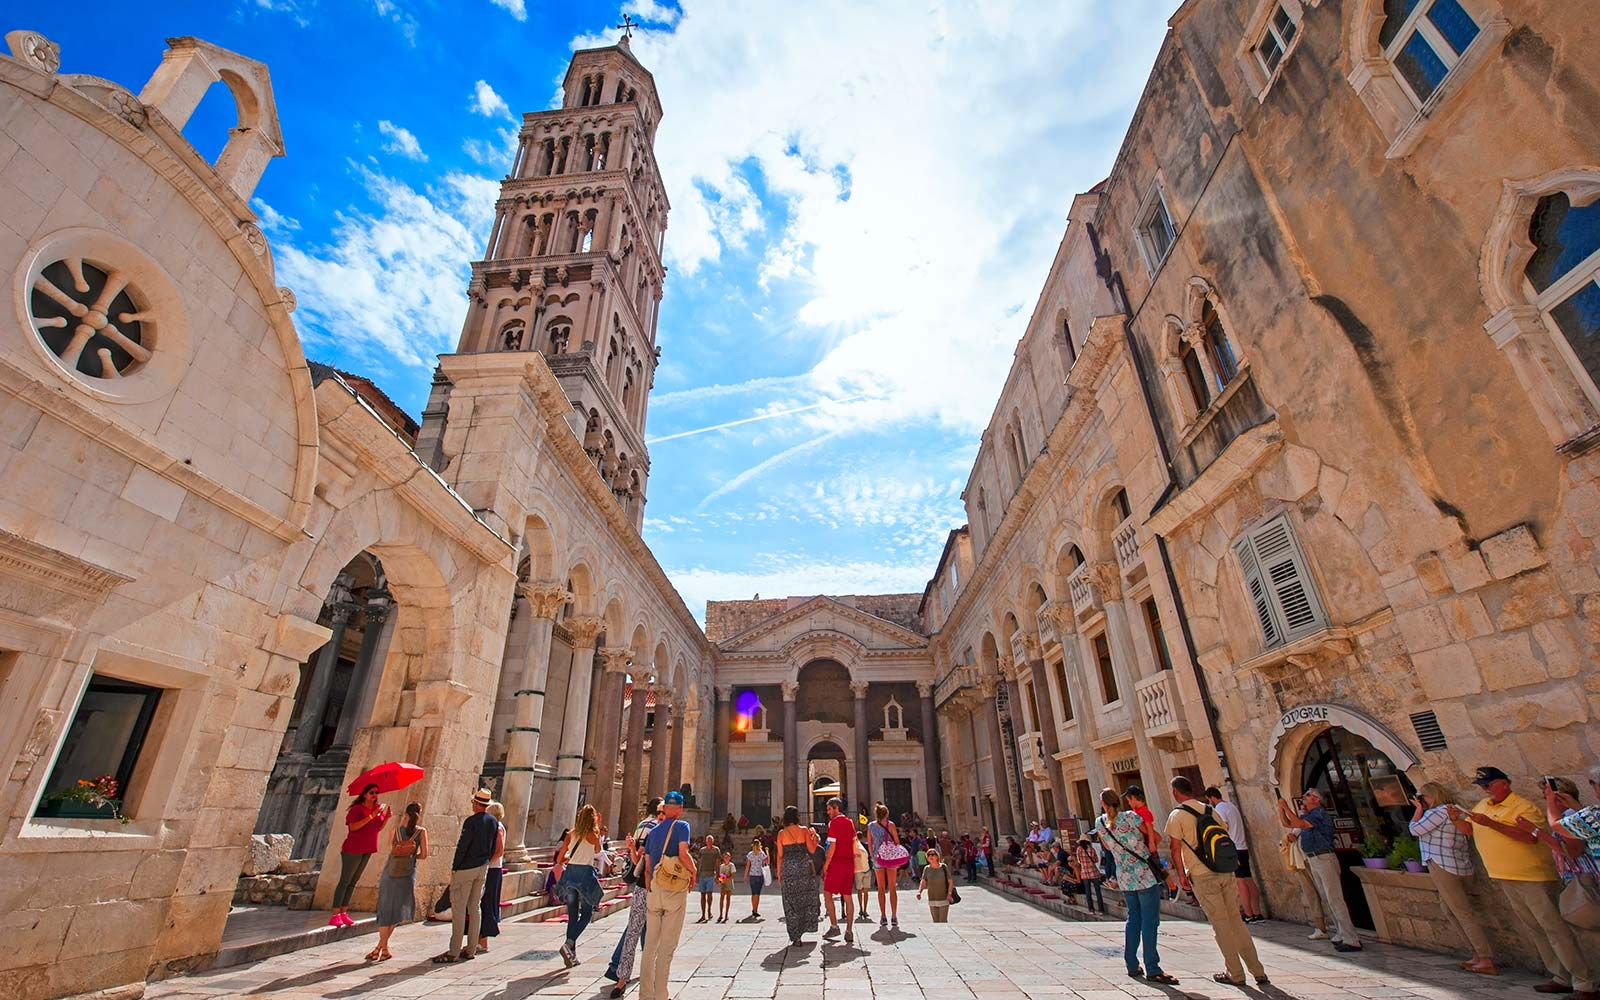 Peristil of the Diocletian's palace Split Croatia Game of Thrones tour